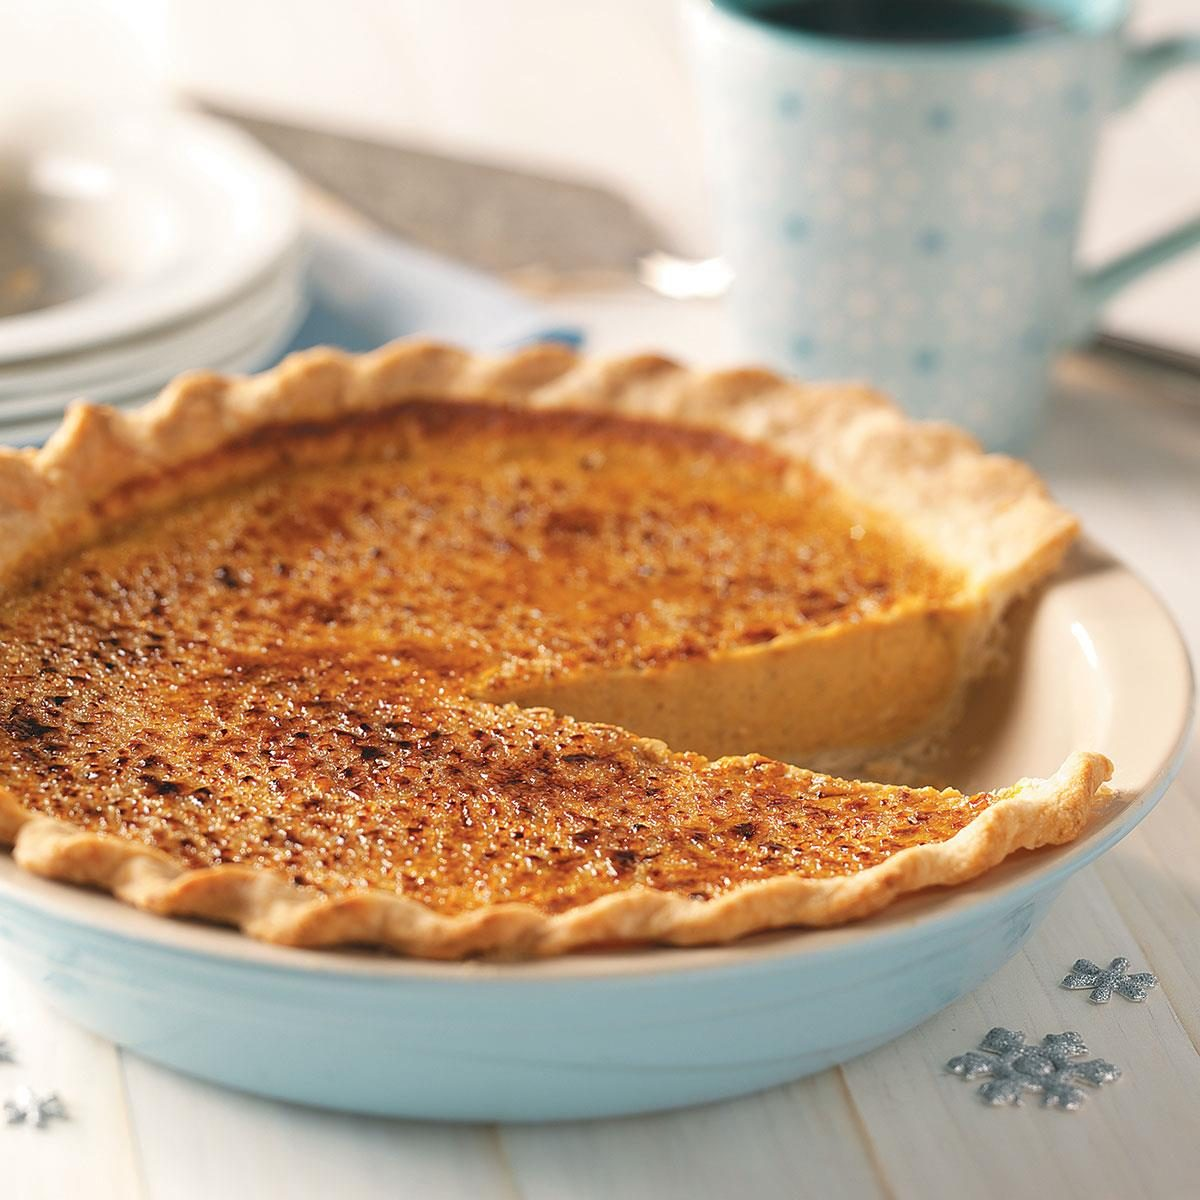 Taste of Home Cookies, Cakes & Pies: 368 All-New Recipes ...